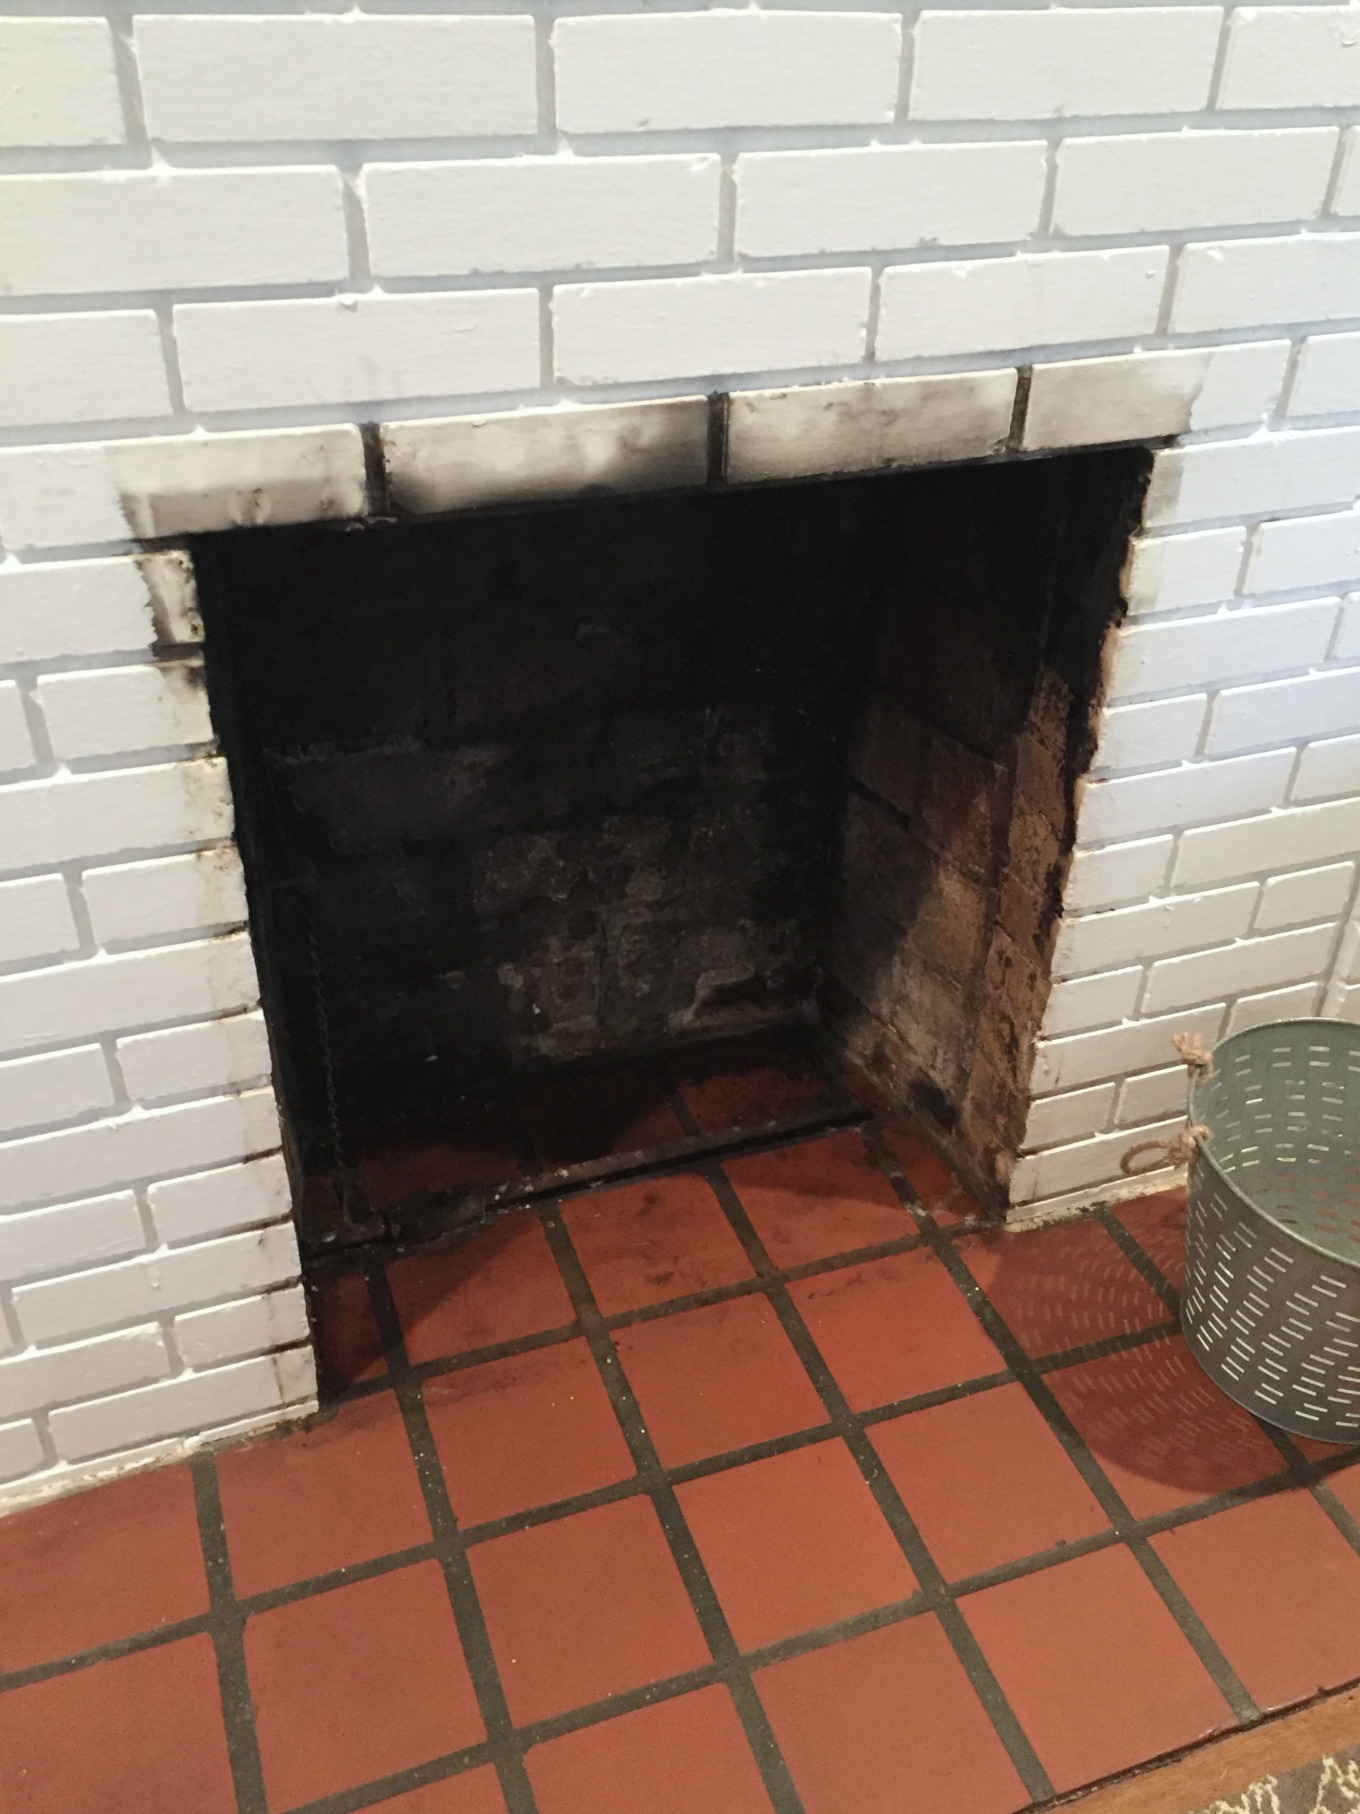 Sooty fireplace in need of fireplace makeover - thediybungalow.com